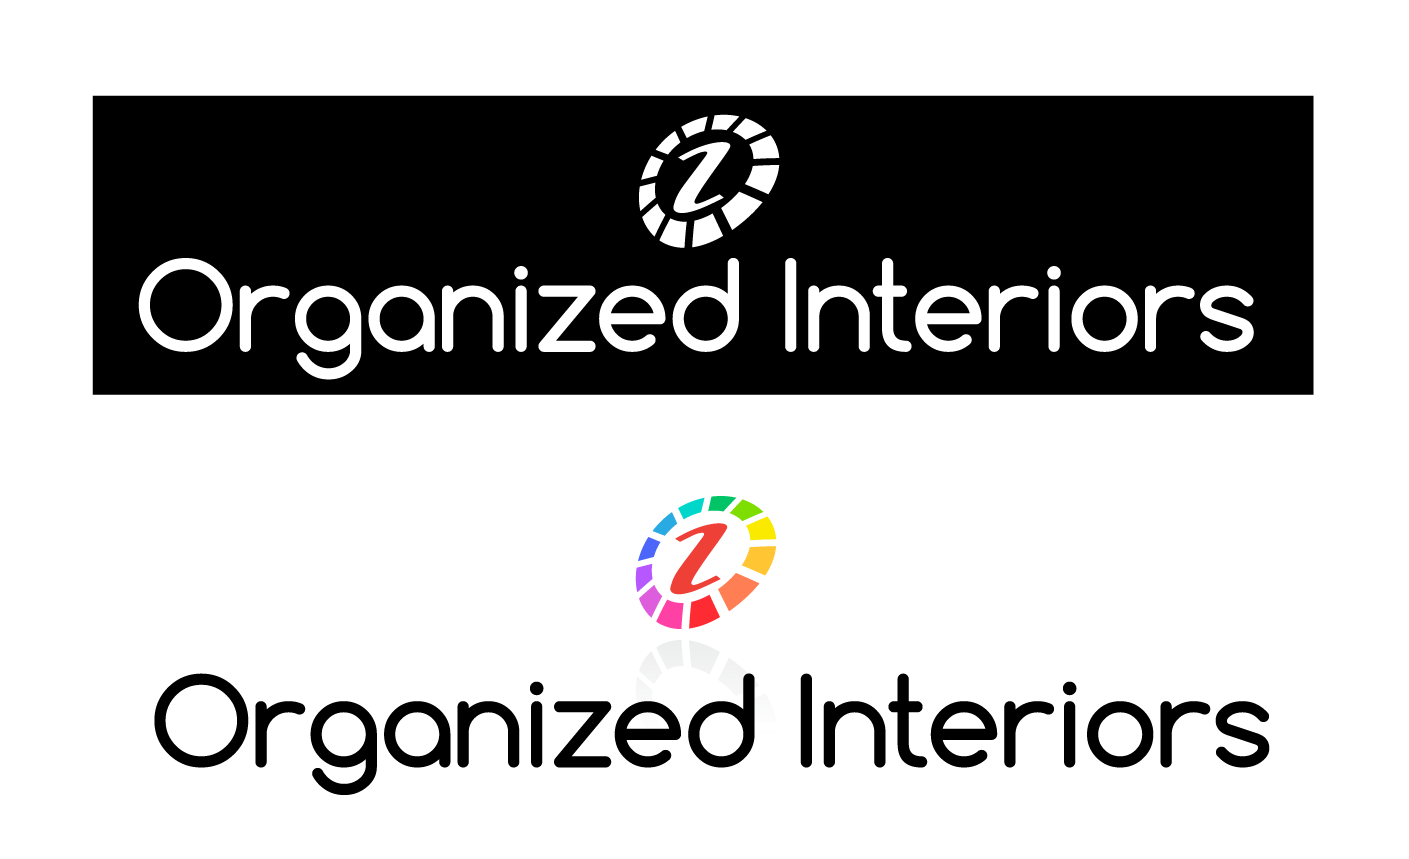 Logo Design by 354studio - Entry No. 12 in the Logo Design Contest Imaginative Logo Design for Organized Interiors.